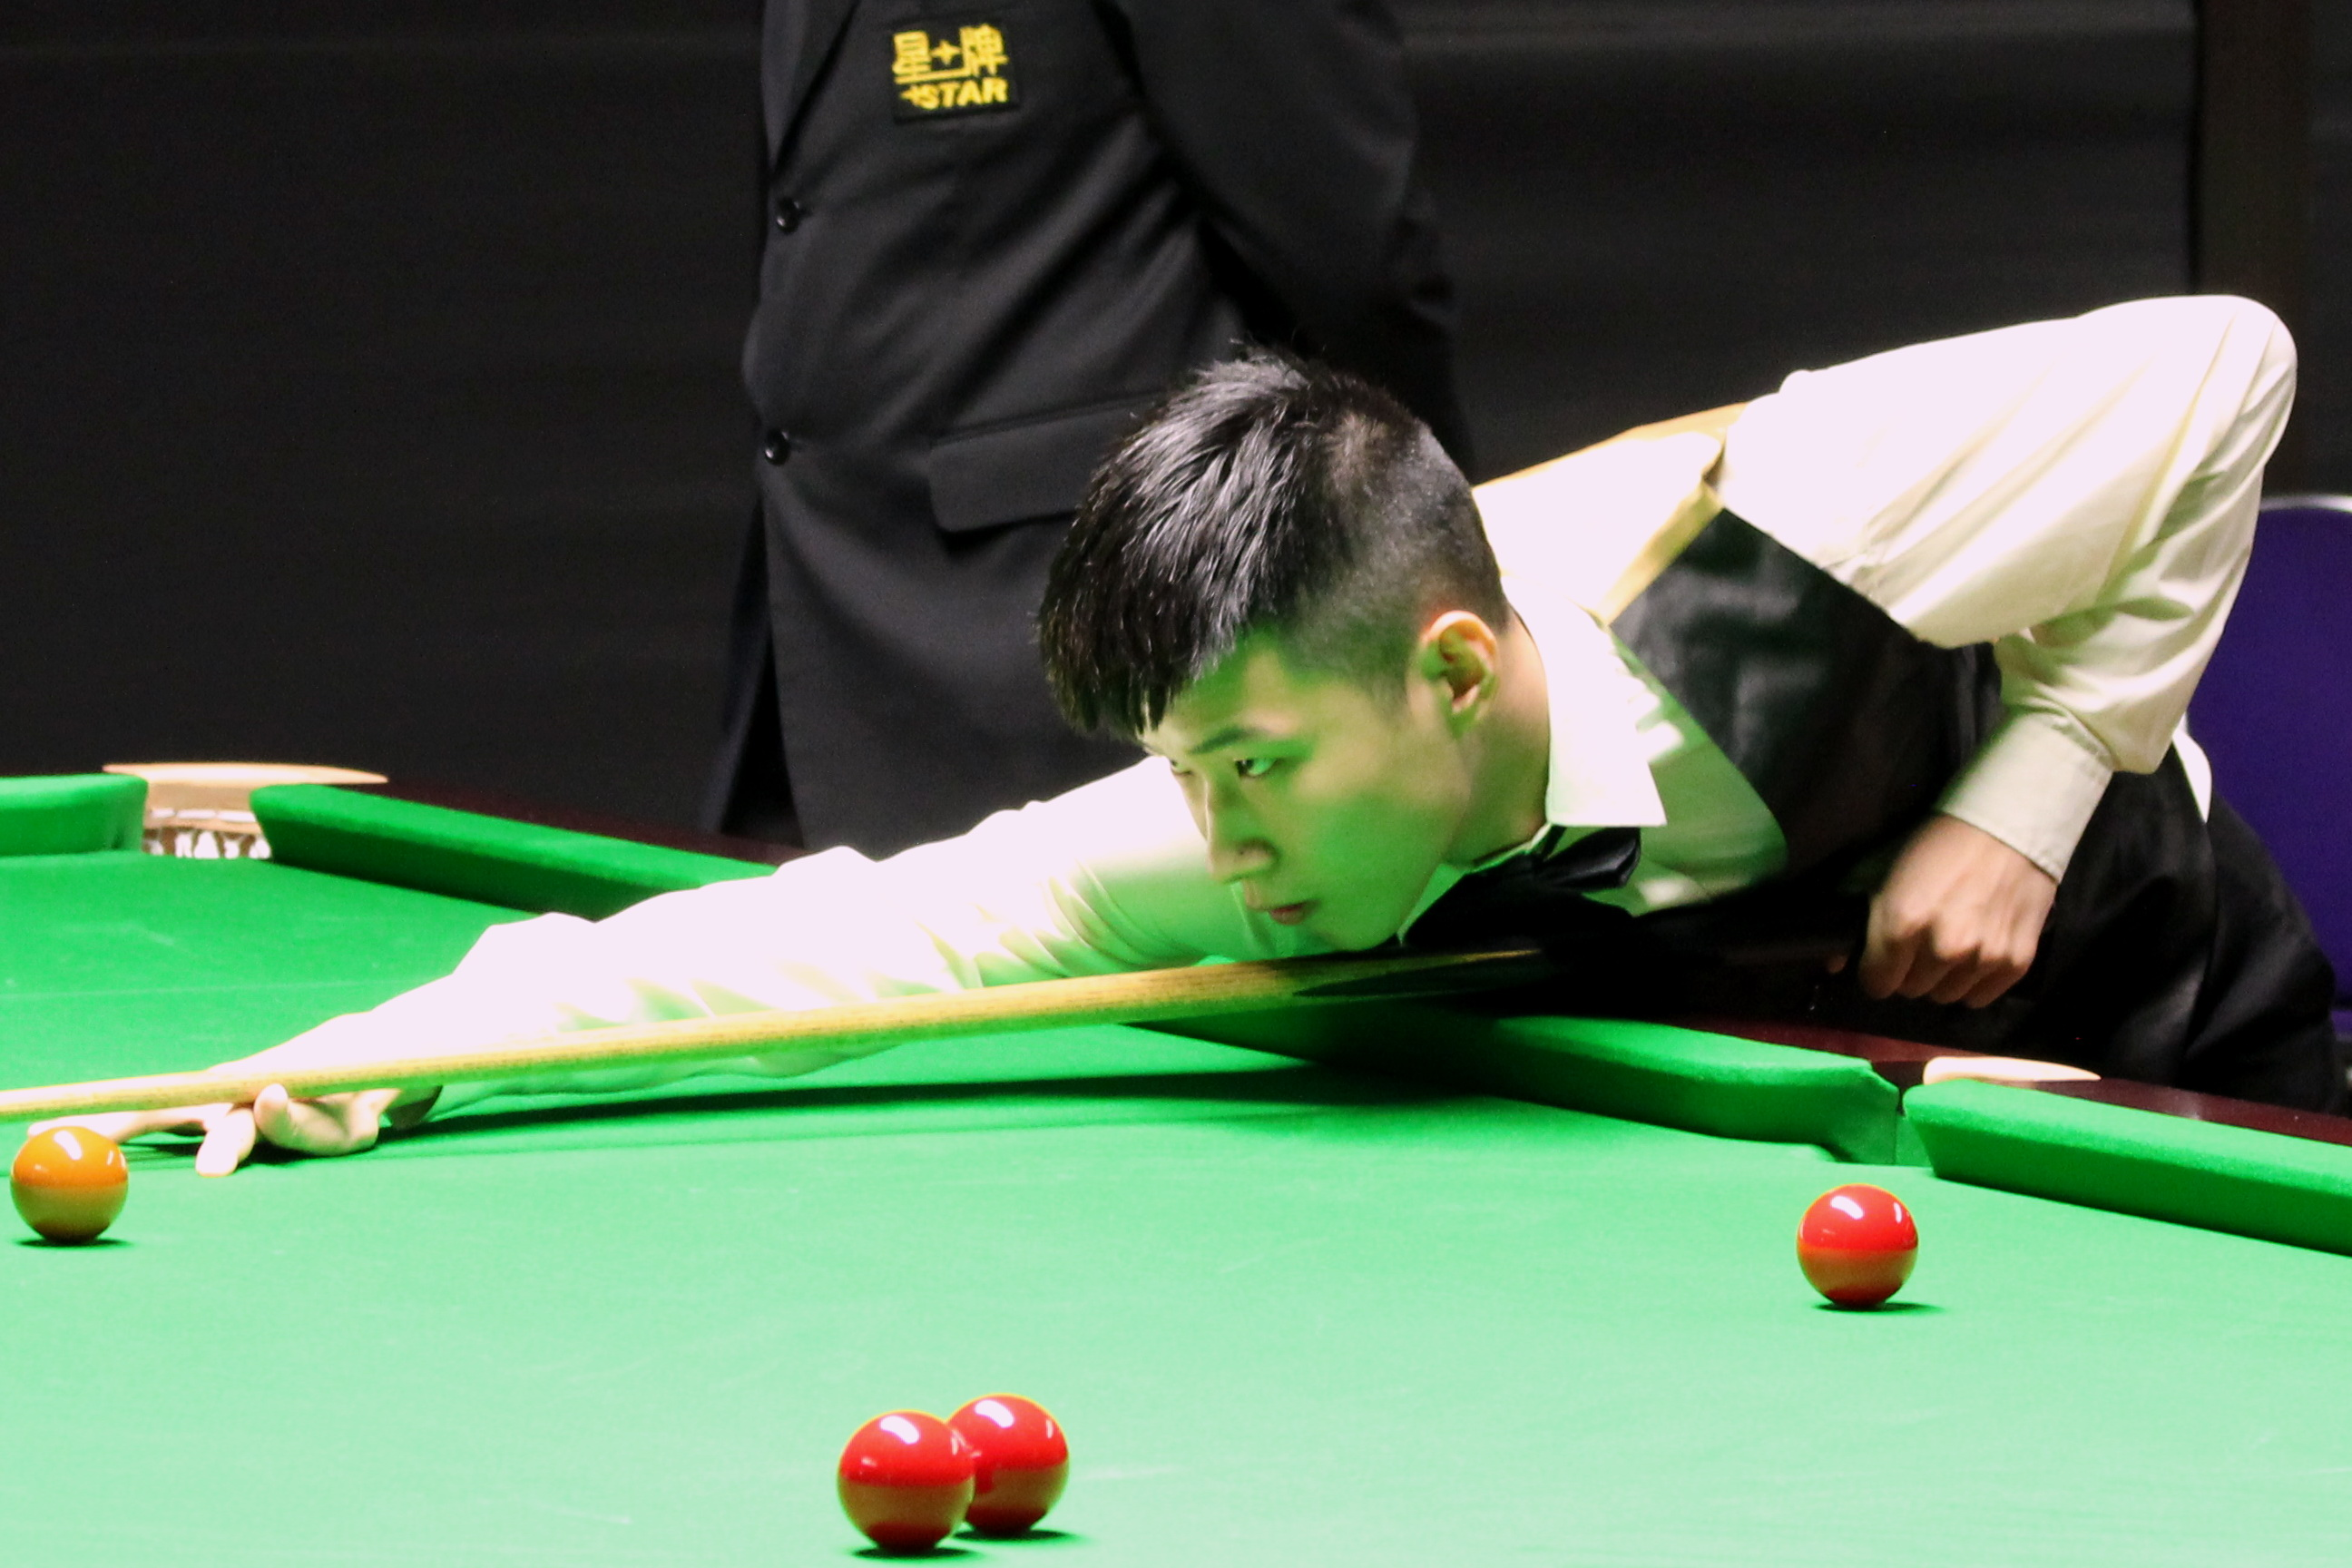 The European Masters Qualification is over, Ding Junhui plays stable